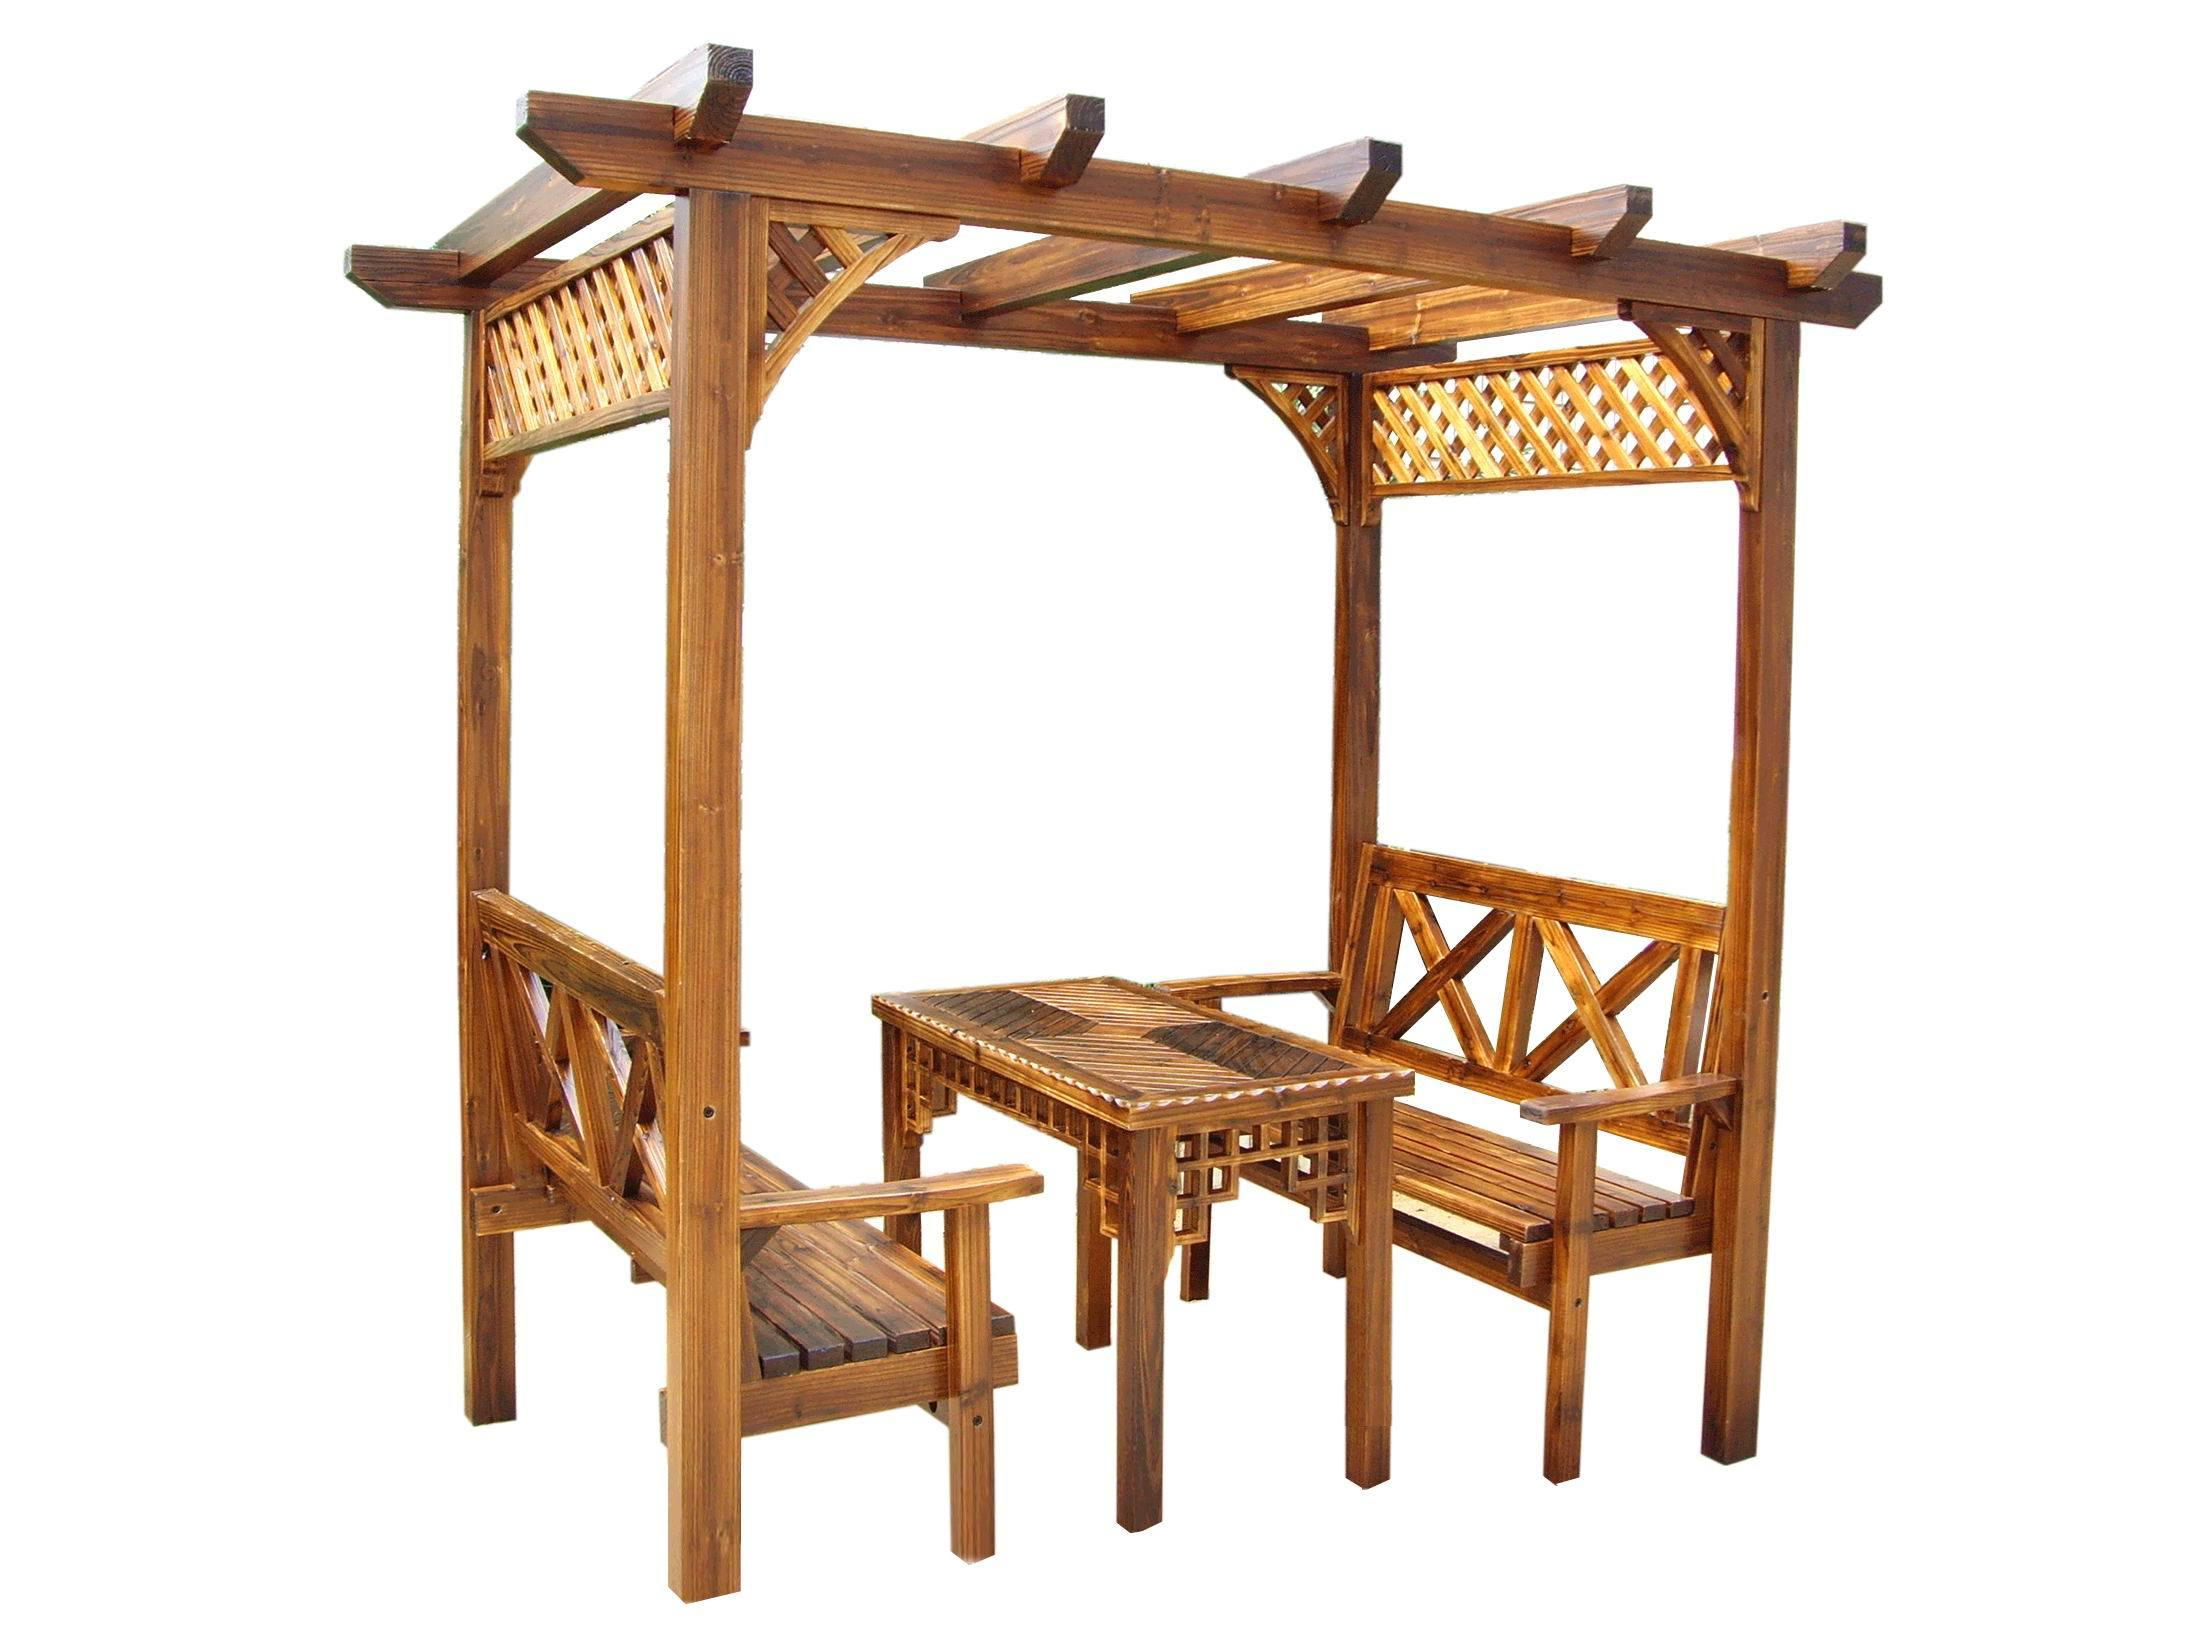 Outdoor furniture woodworking plans new design woodworking for Wooden outdoor furniture